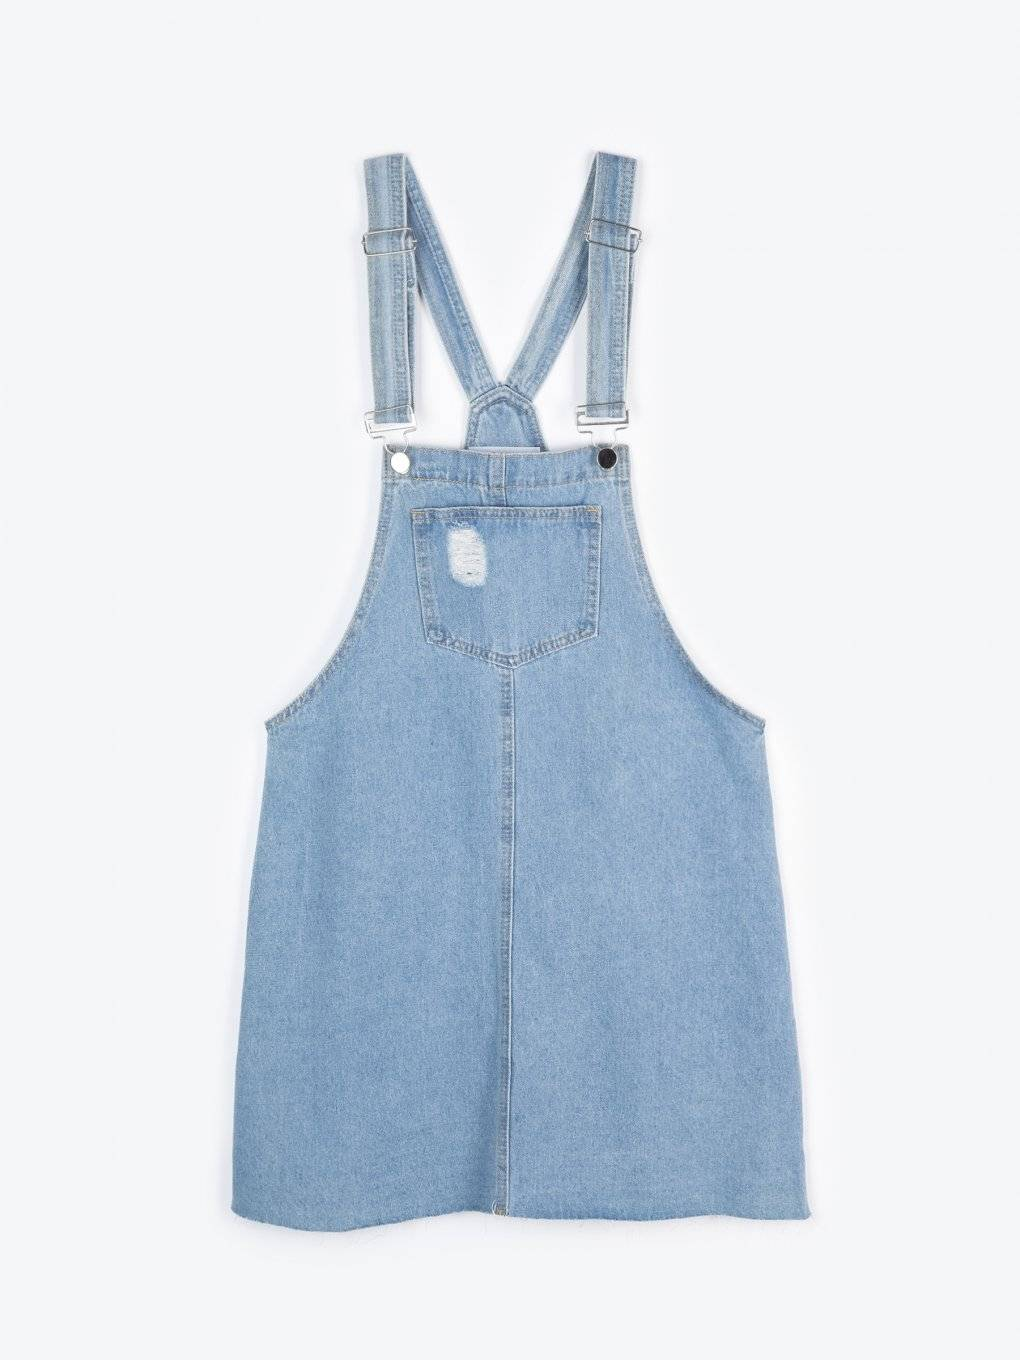 Dungaree denim skirt